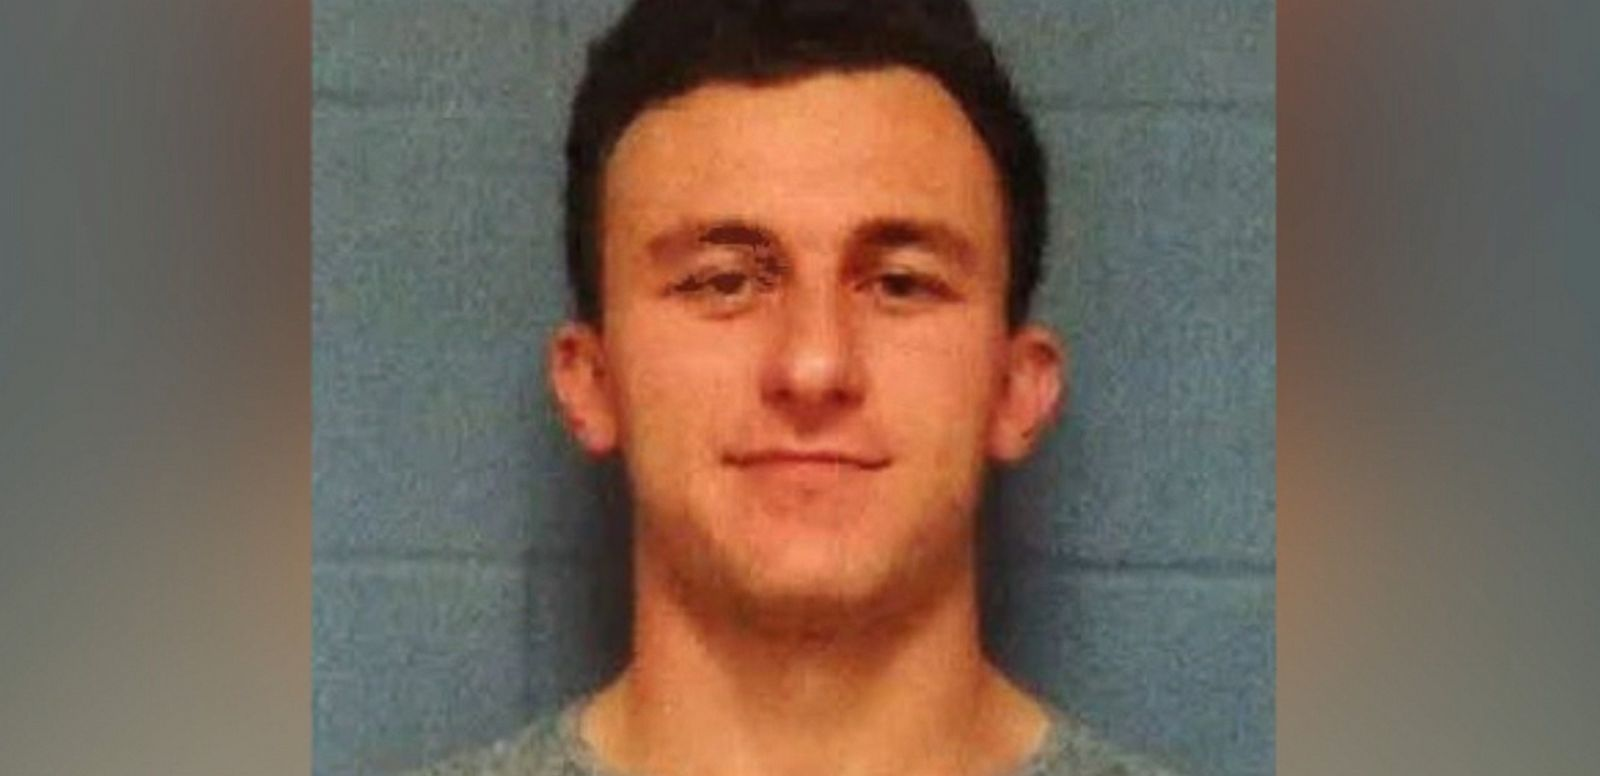 VIDEO: A grand jury charged Manziel, 23, with family violence assault last week following allegations from an ex-girlfriend who accused Manziel of accosting her and then hitting her during an incident in January.